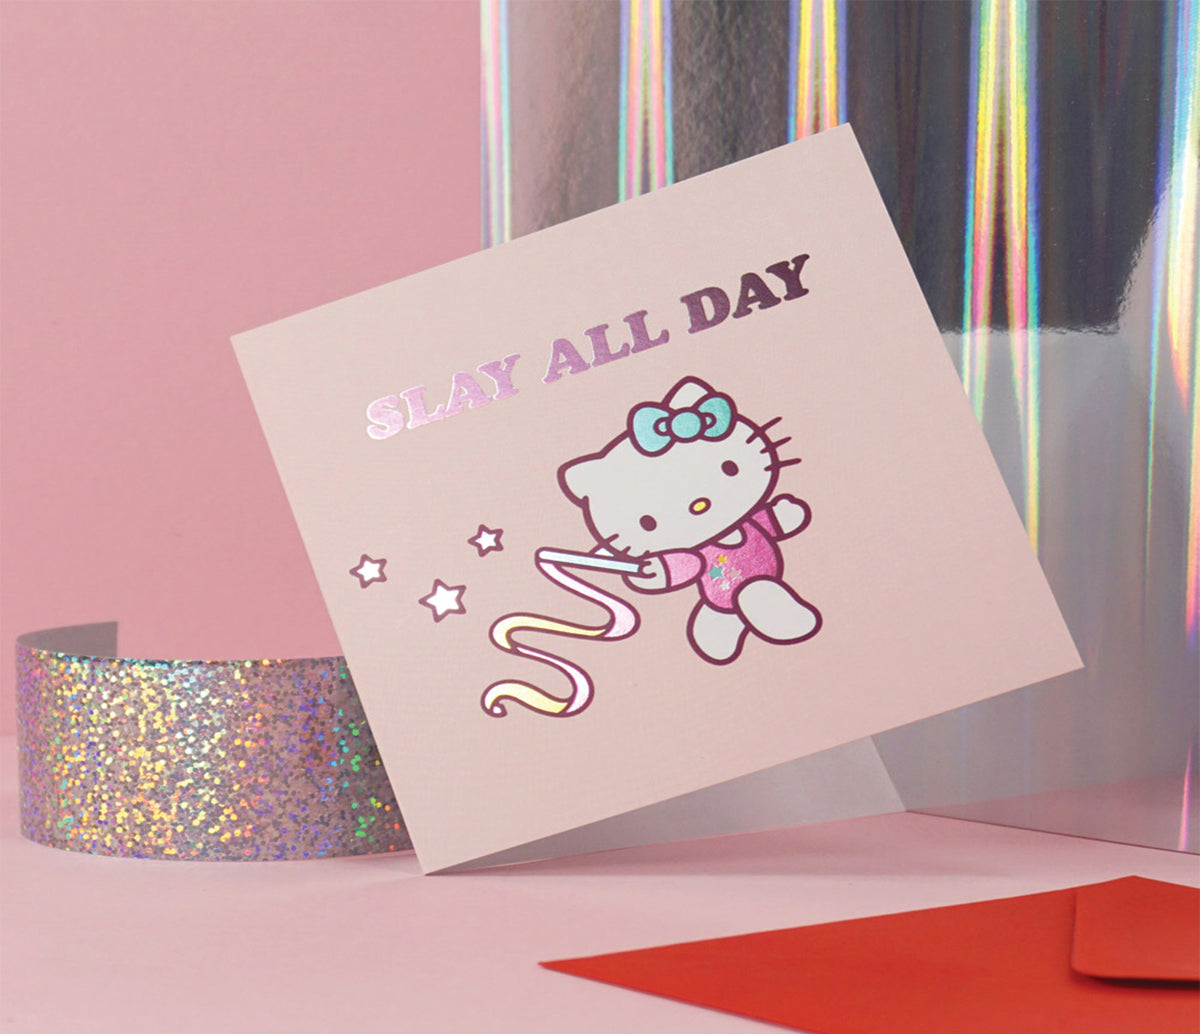 Jolly Awesome x Hello Kitty Greeting Card: Slay